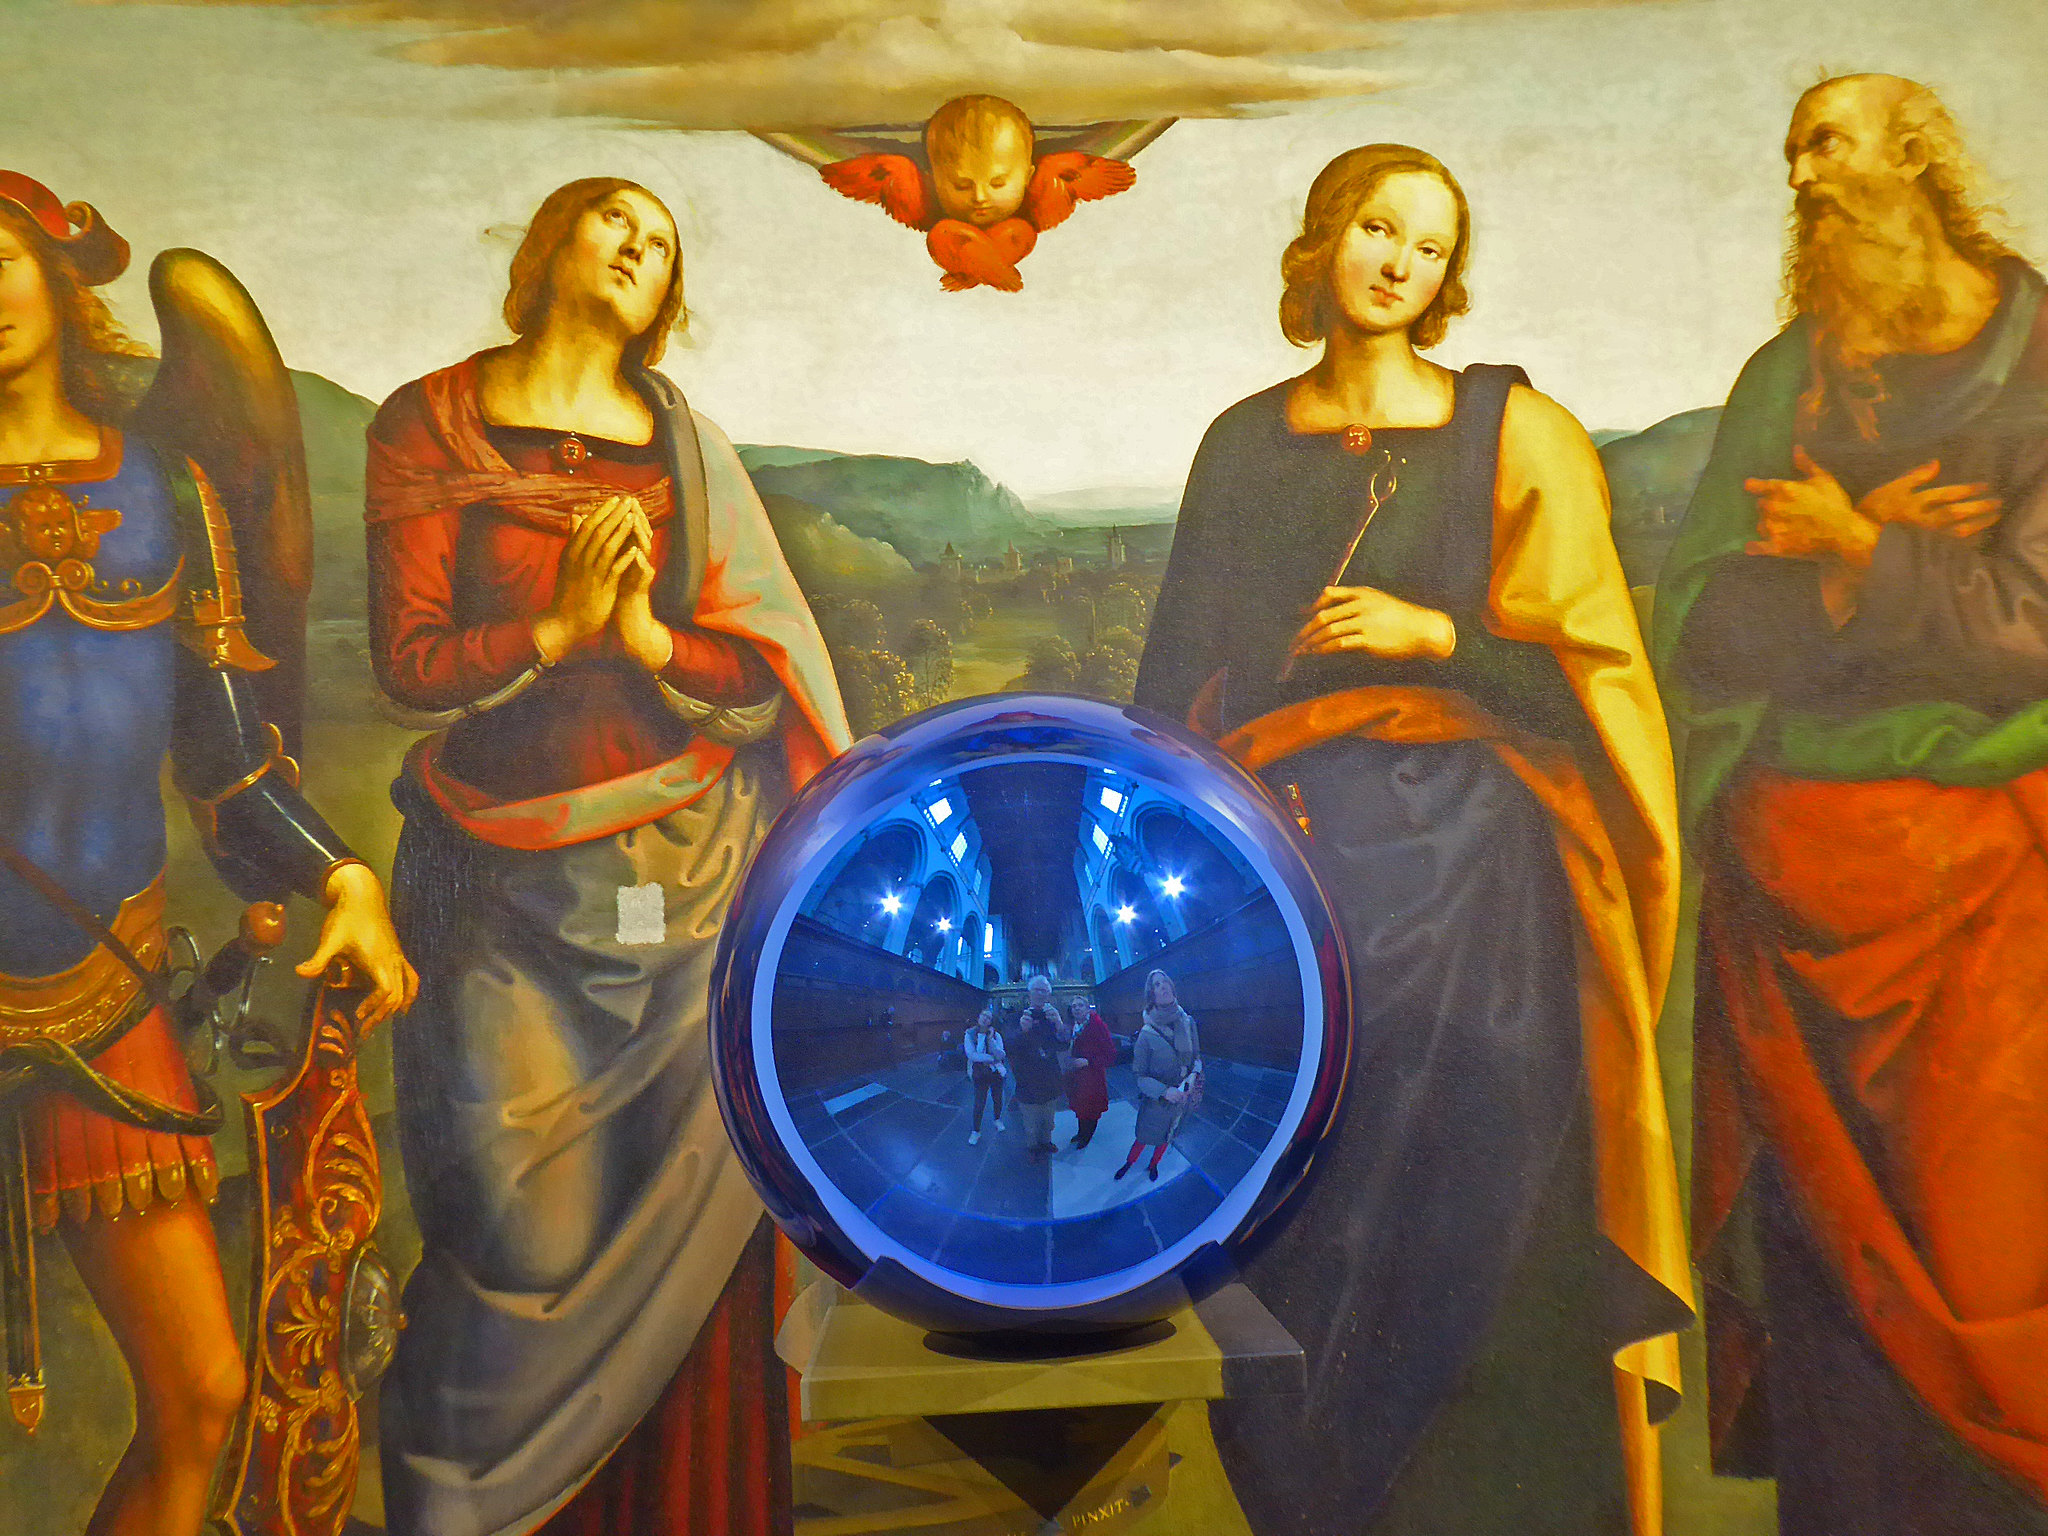 Detail of a Jeff Koons Gazing Ball painting. Photography by  Flickr user Ebe9 .